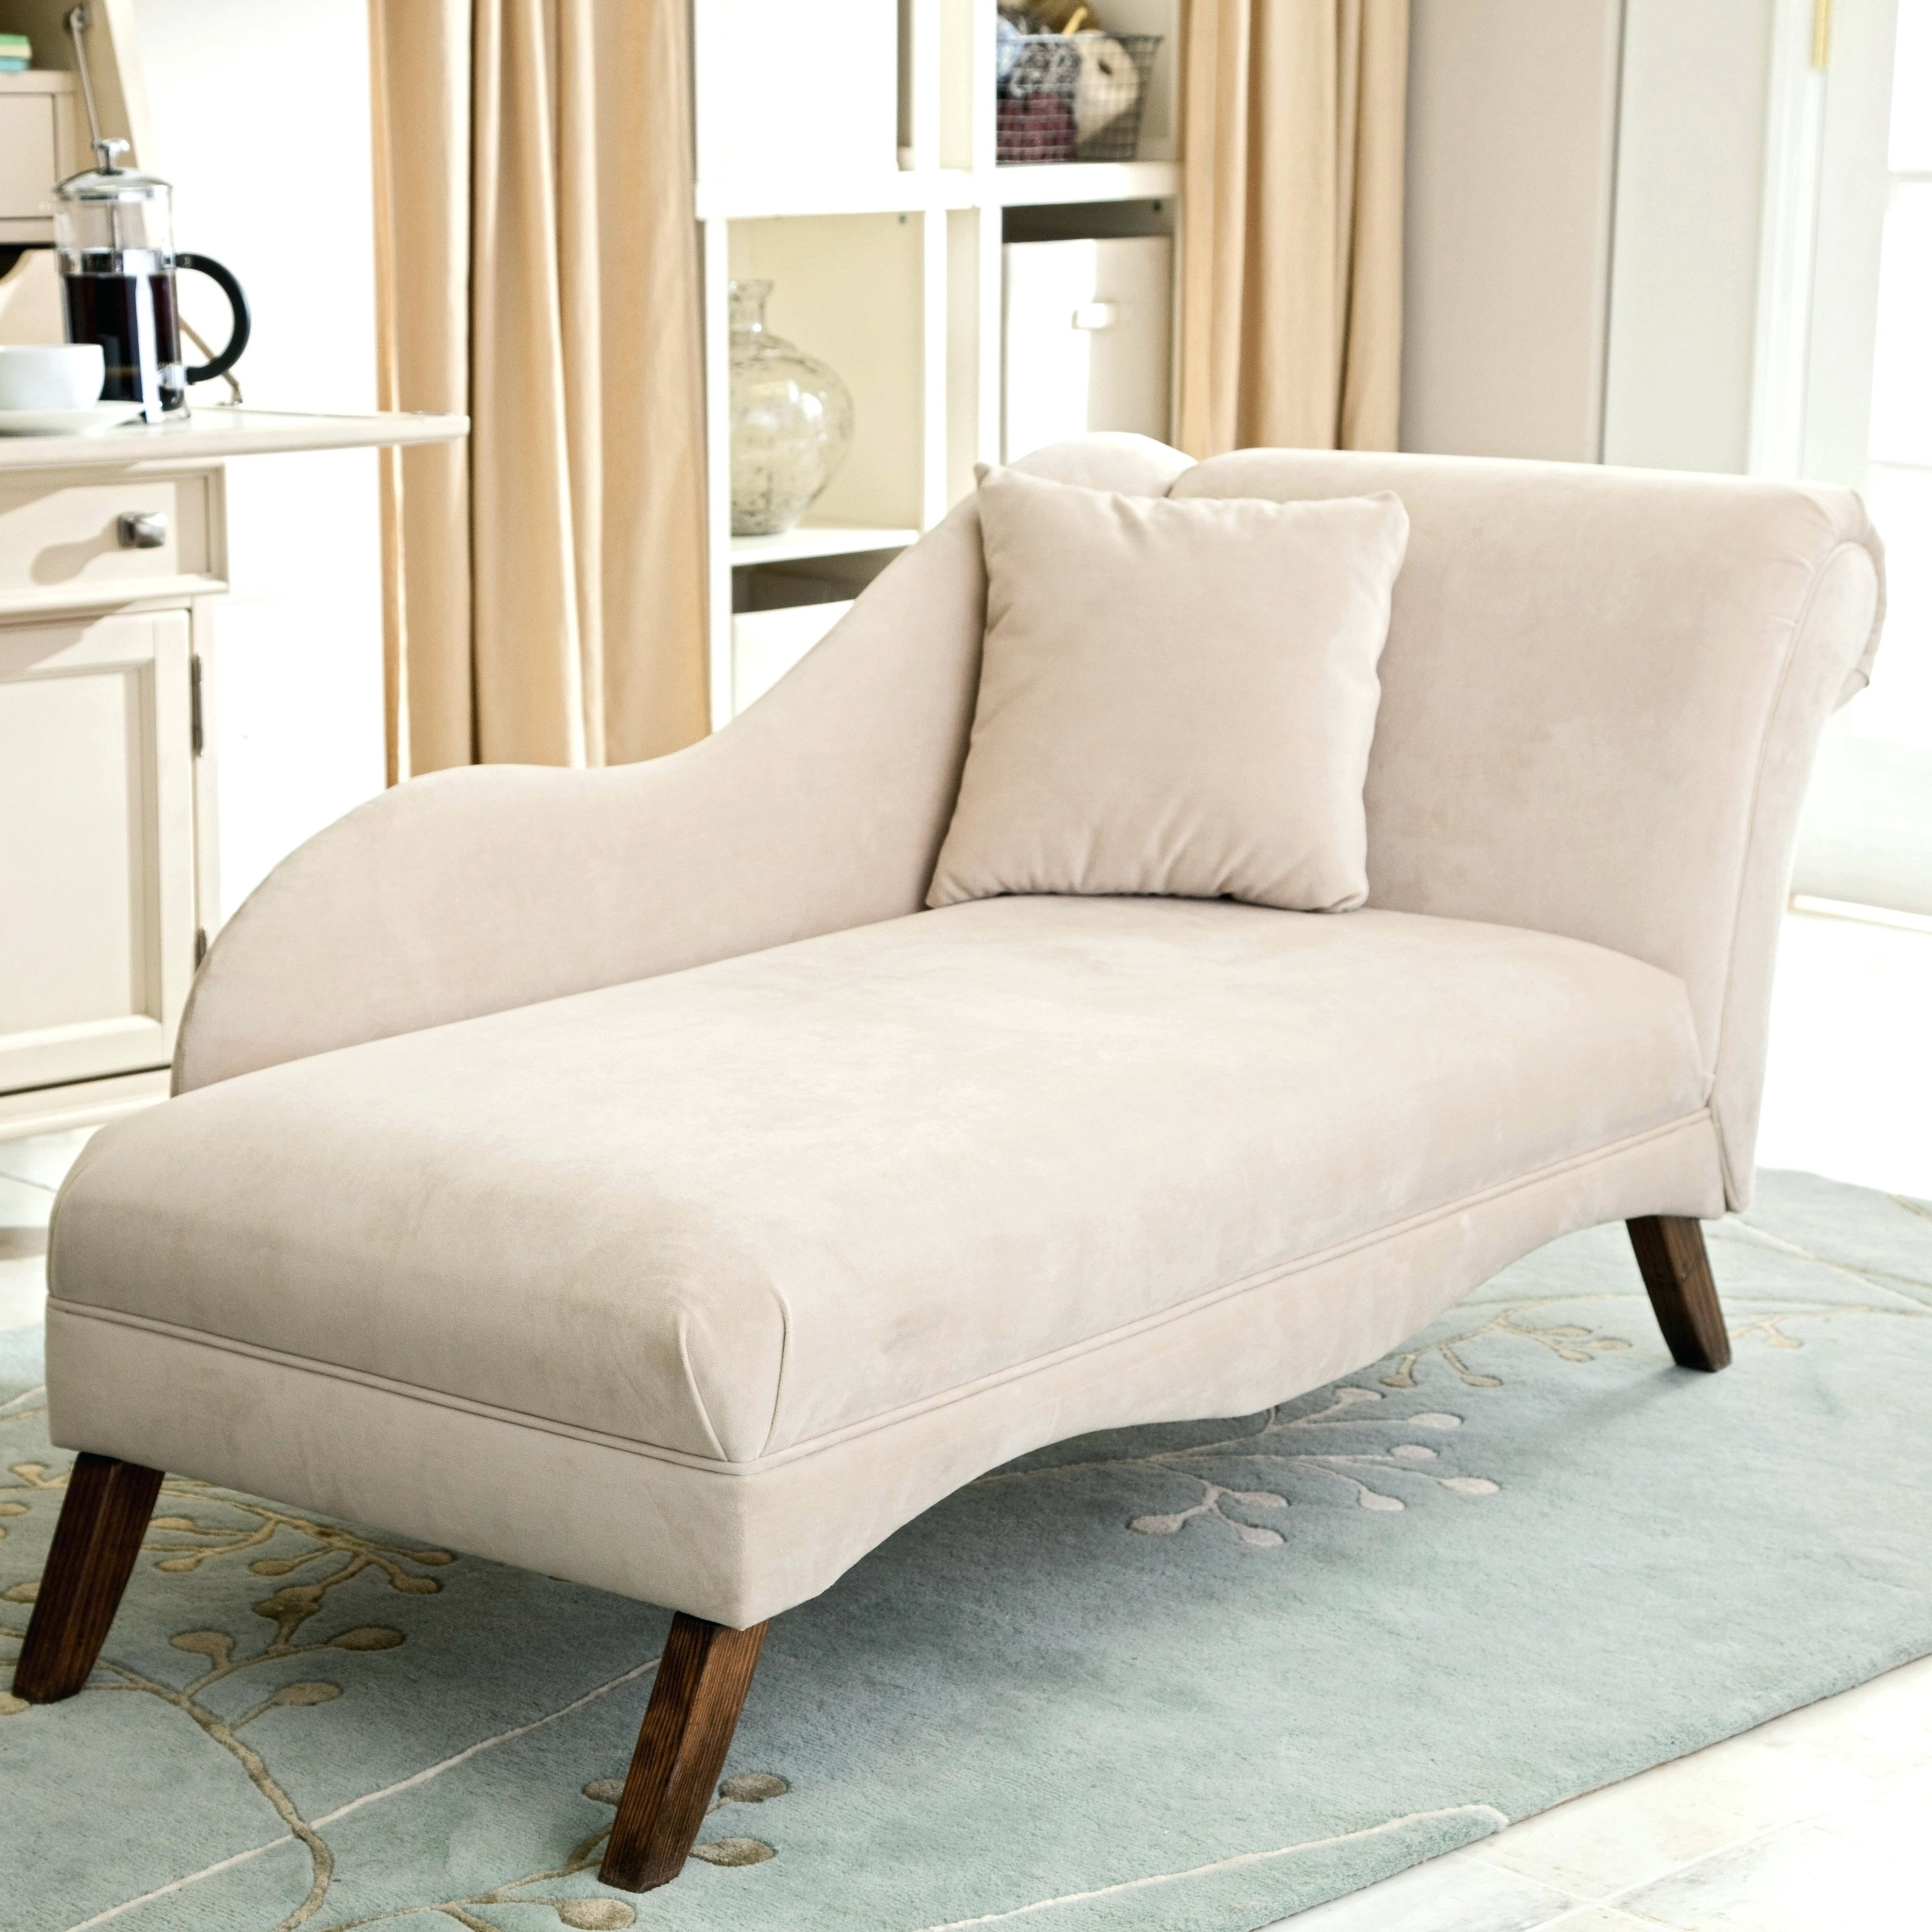 Chaise Lounge Chairs For Small Spaces Throughout Famous Small Chaise Lounge Chair For Room Incredible Chairs Bedroom Ideas (View 4 of 15)